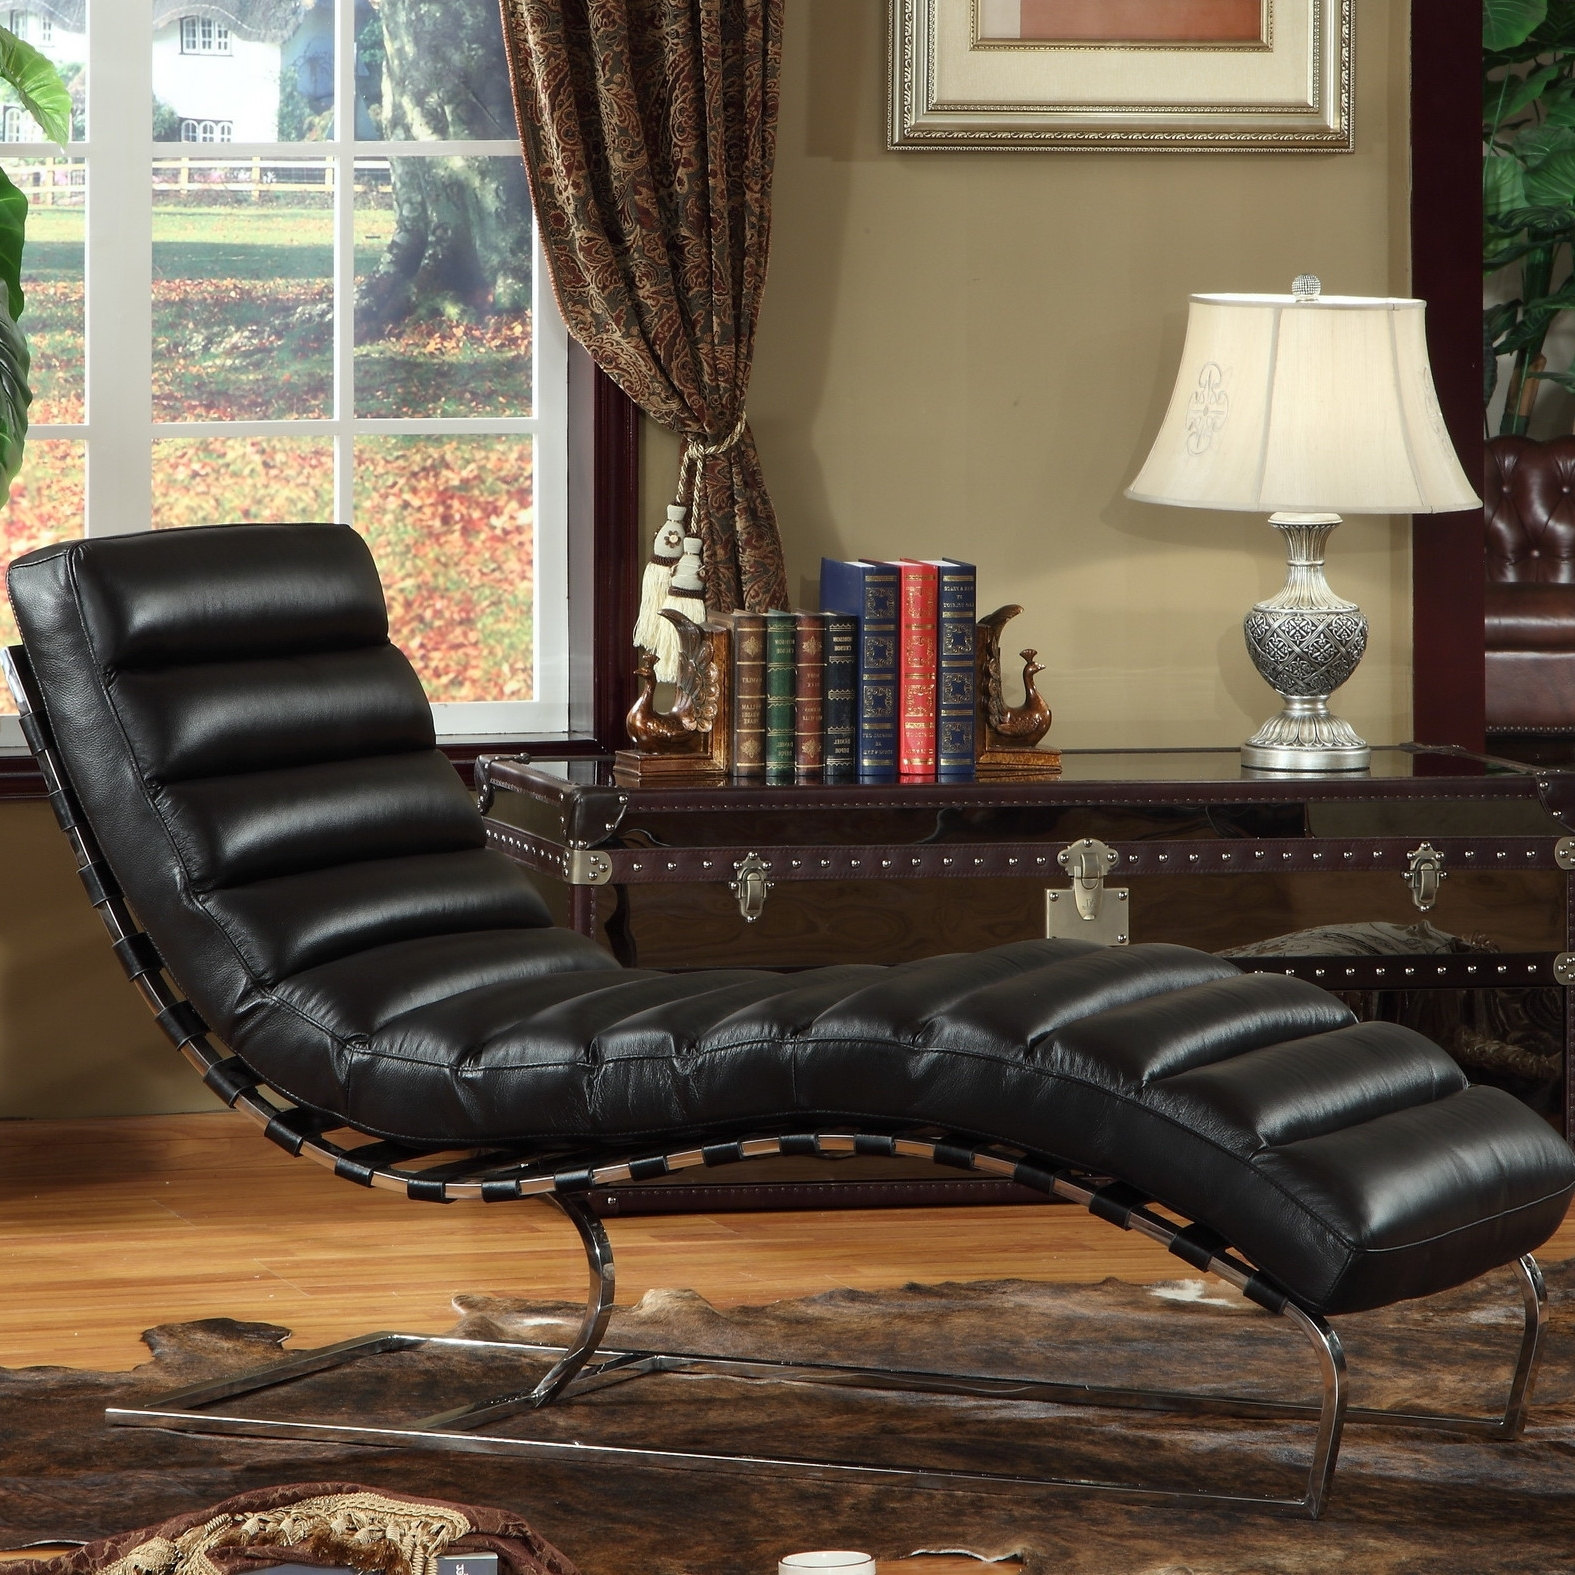 Well Liked Beautiful Leather Chaise Lounge Chair — Lustwithalaugh Design In Leather Chaise Lounges (View 14 of 15)